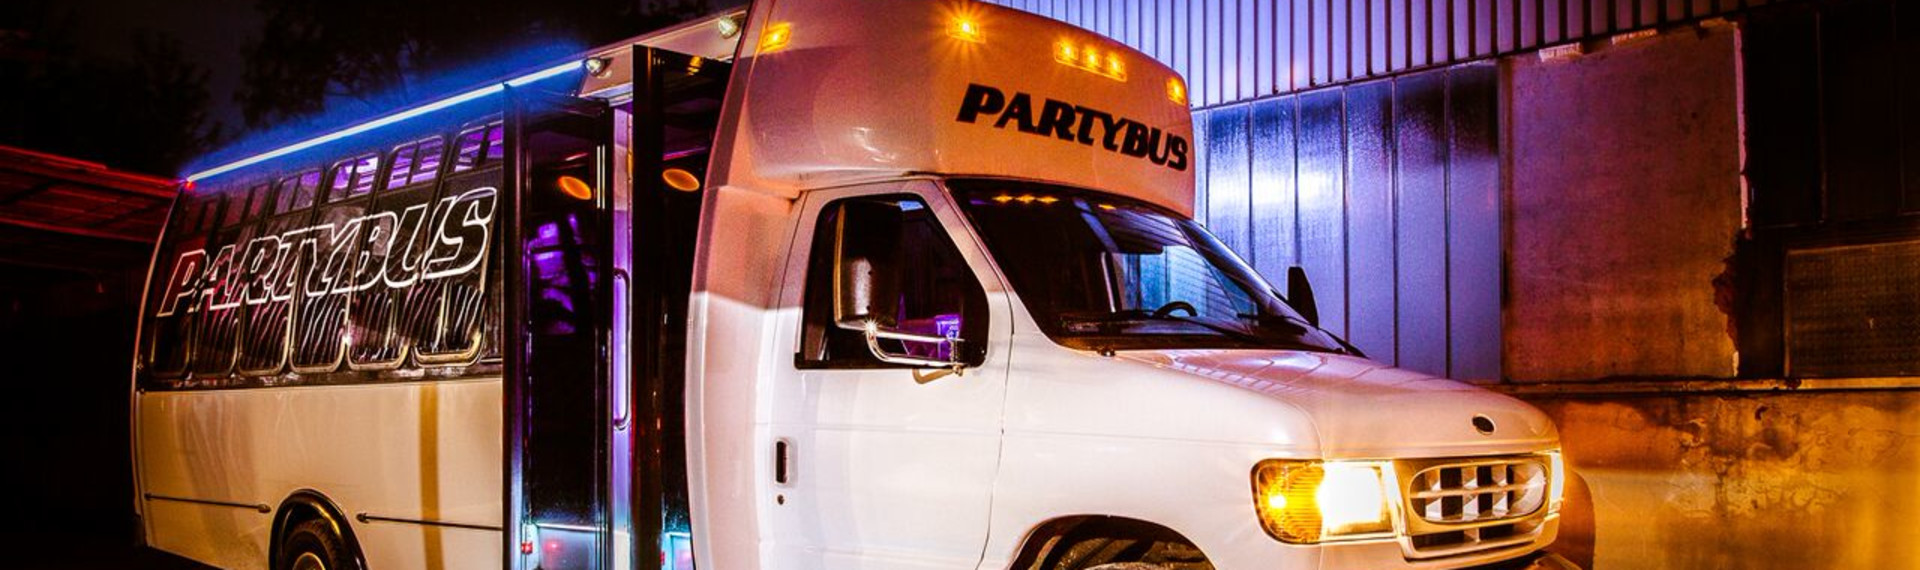 Warsaw Mini Party Bus image